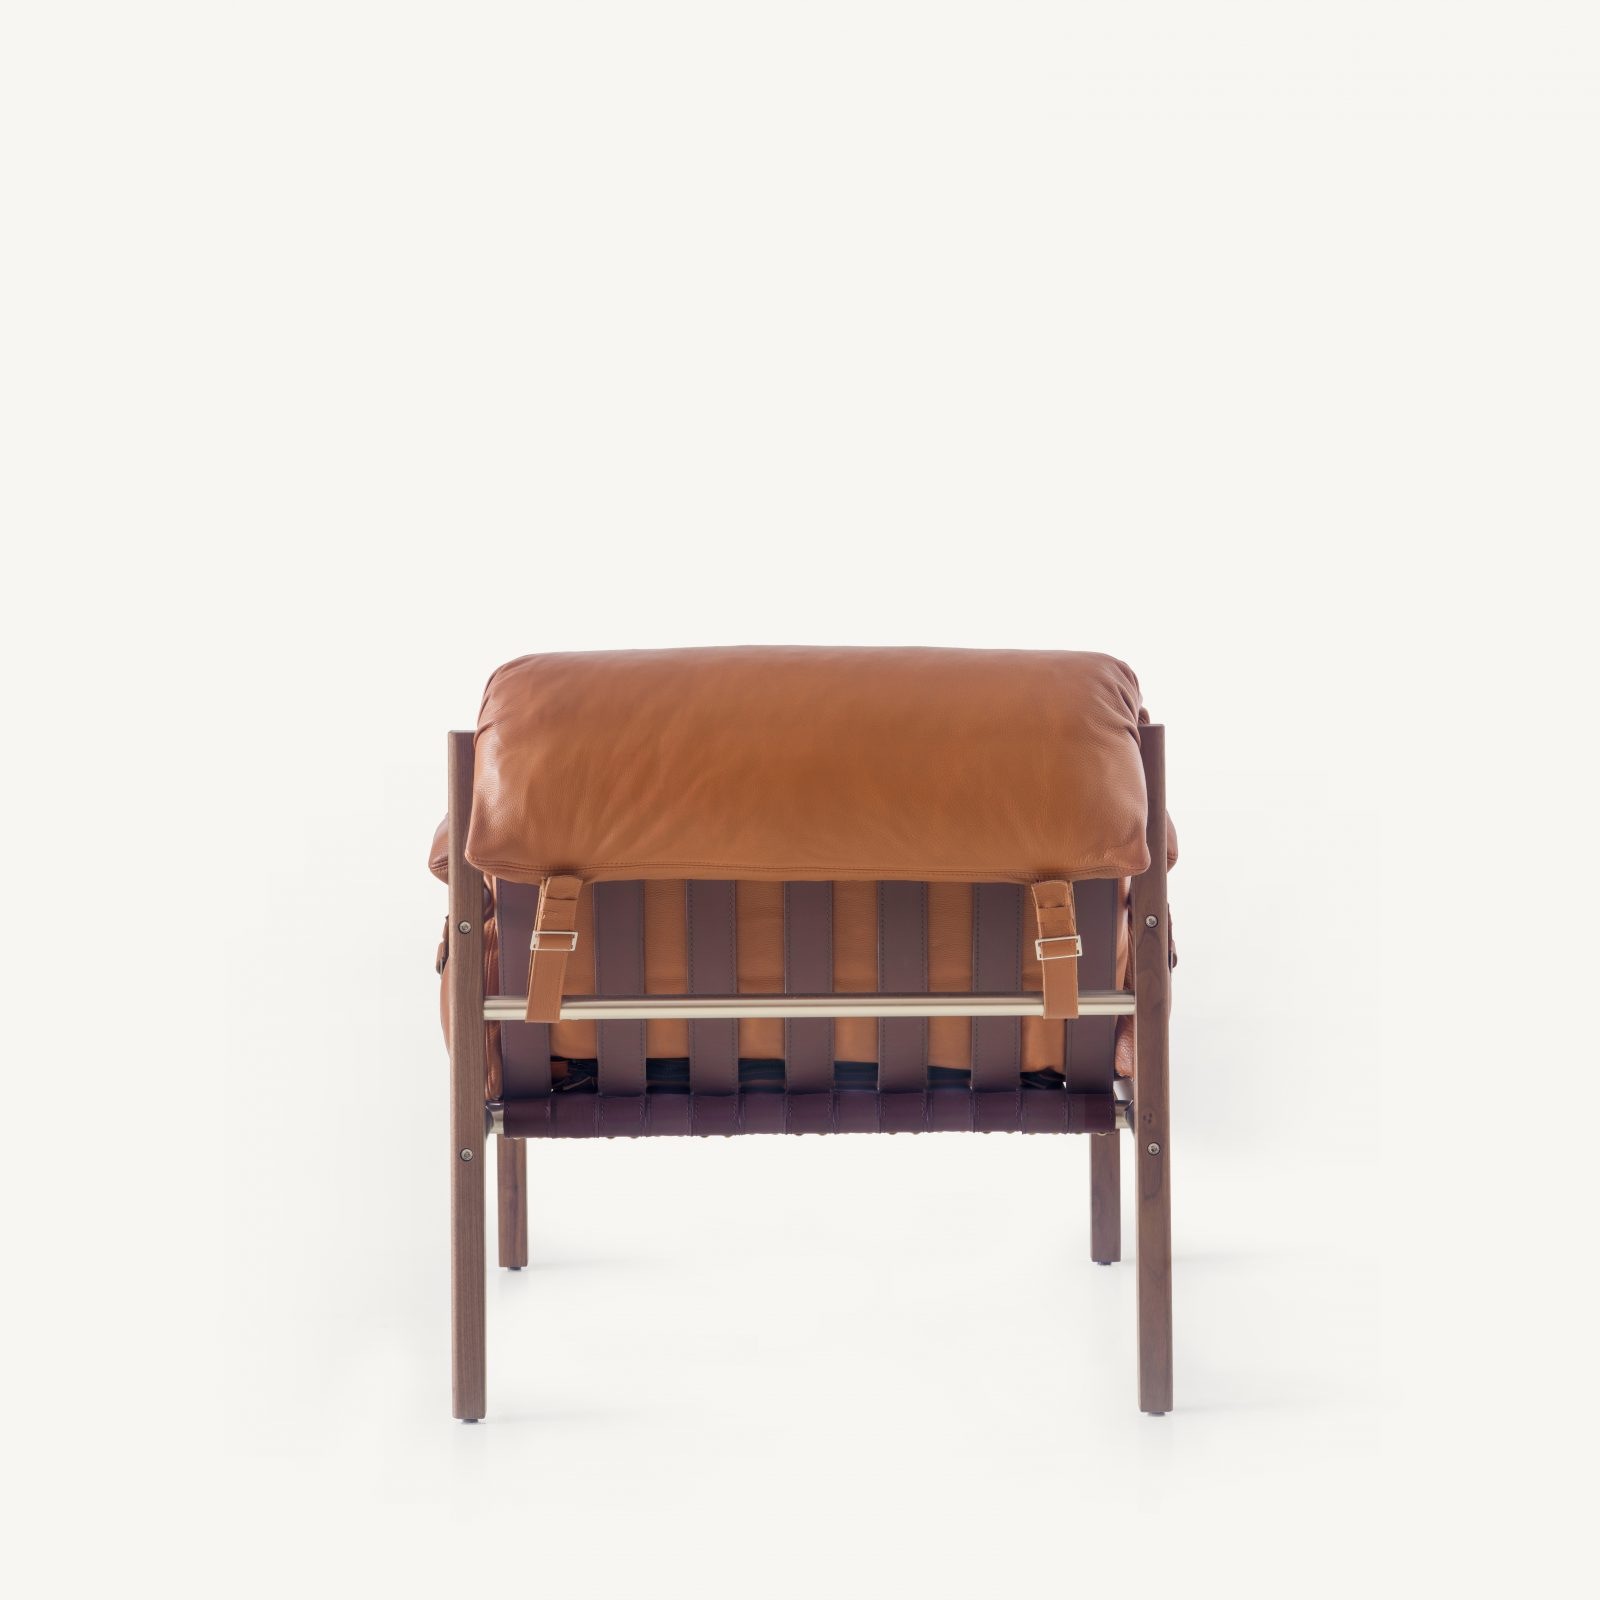 BassamFellows CB-570 Sling Club Chair in solid Walnut and plated steel, back, credit MARCO FAVALLI